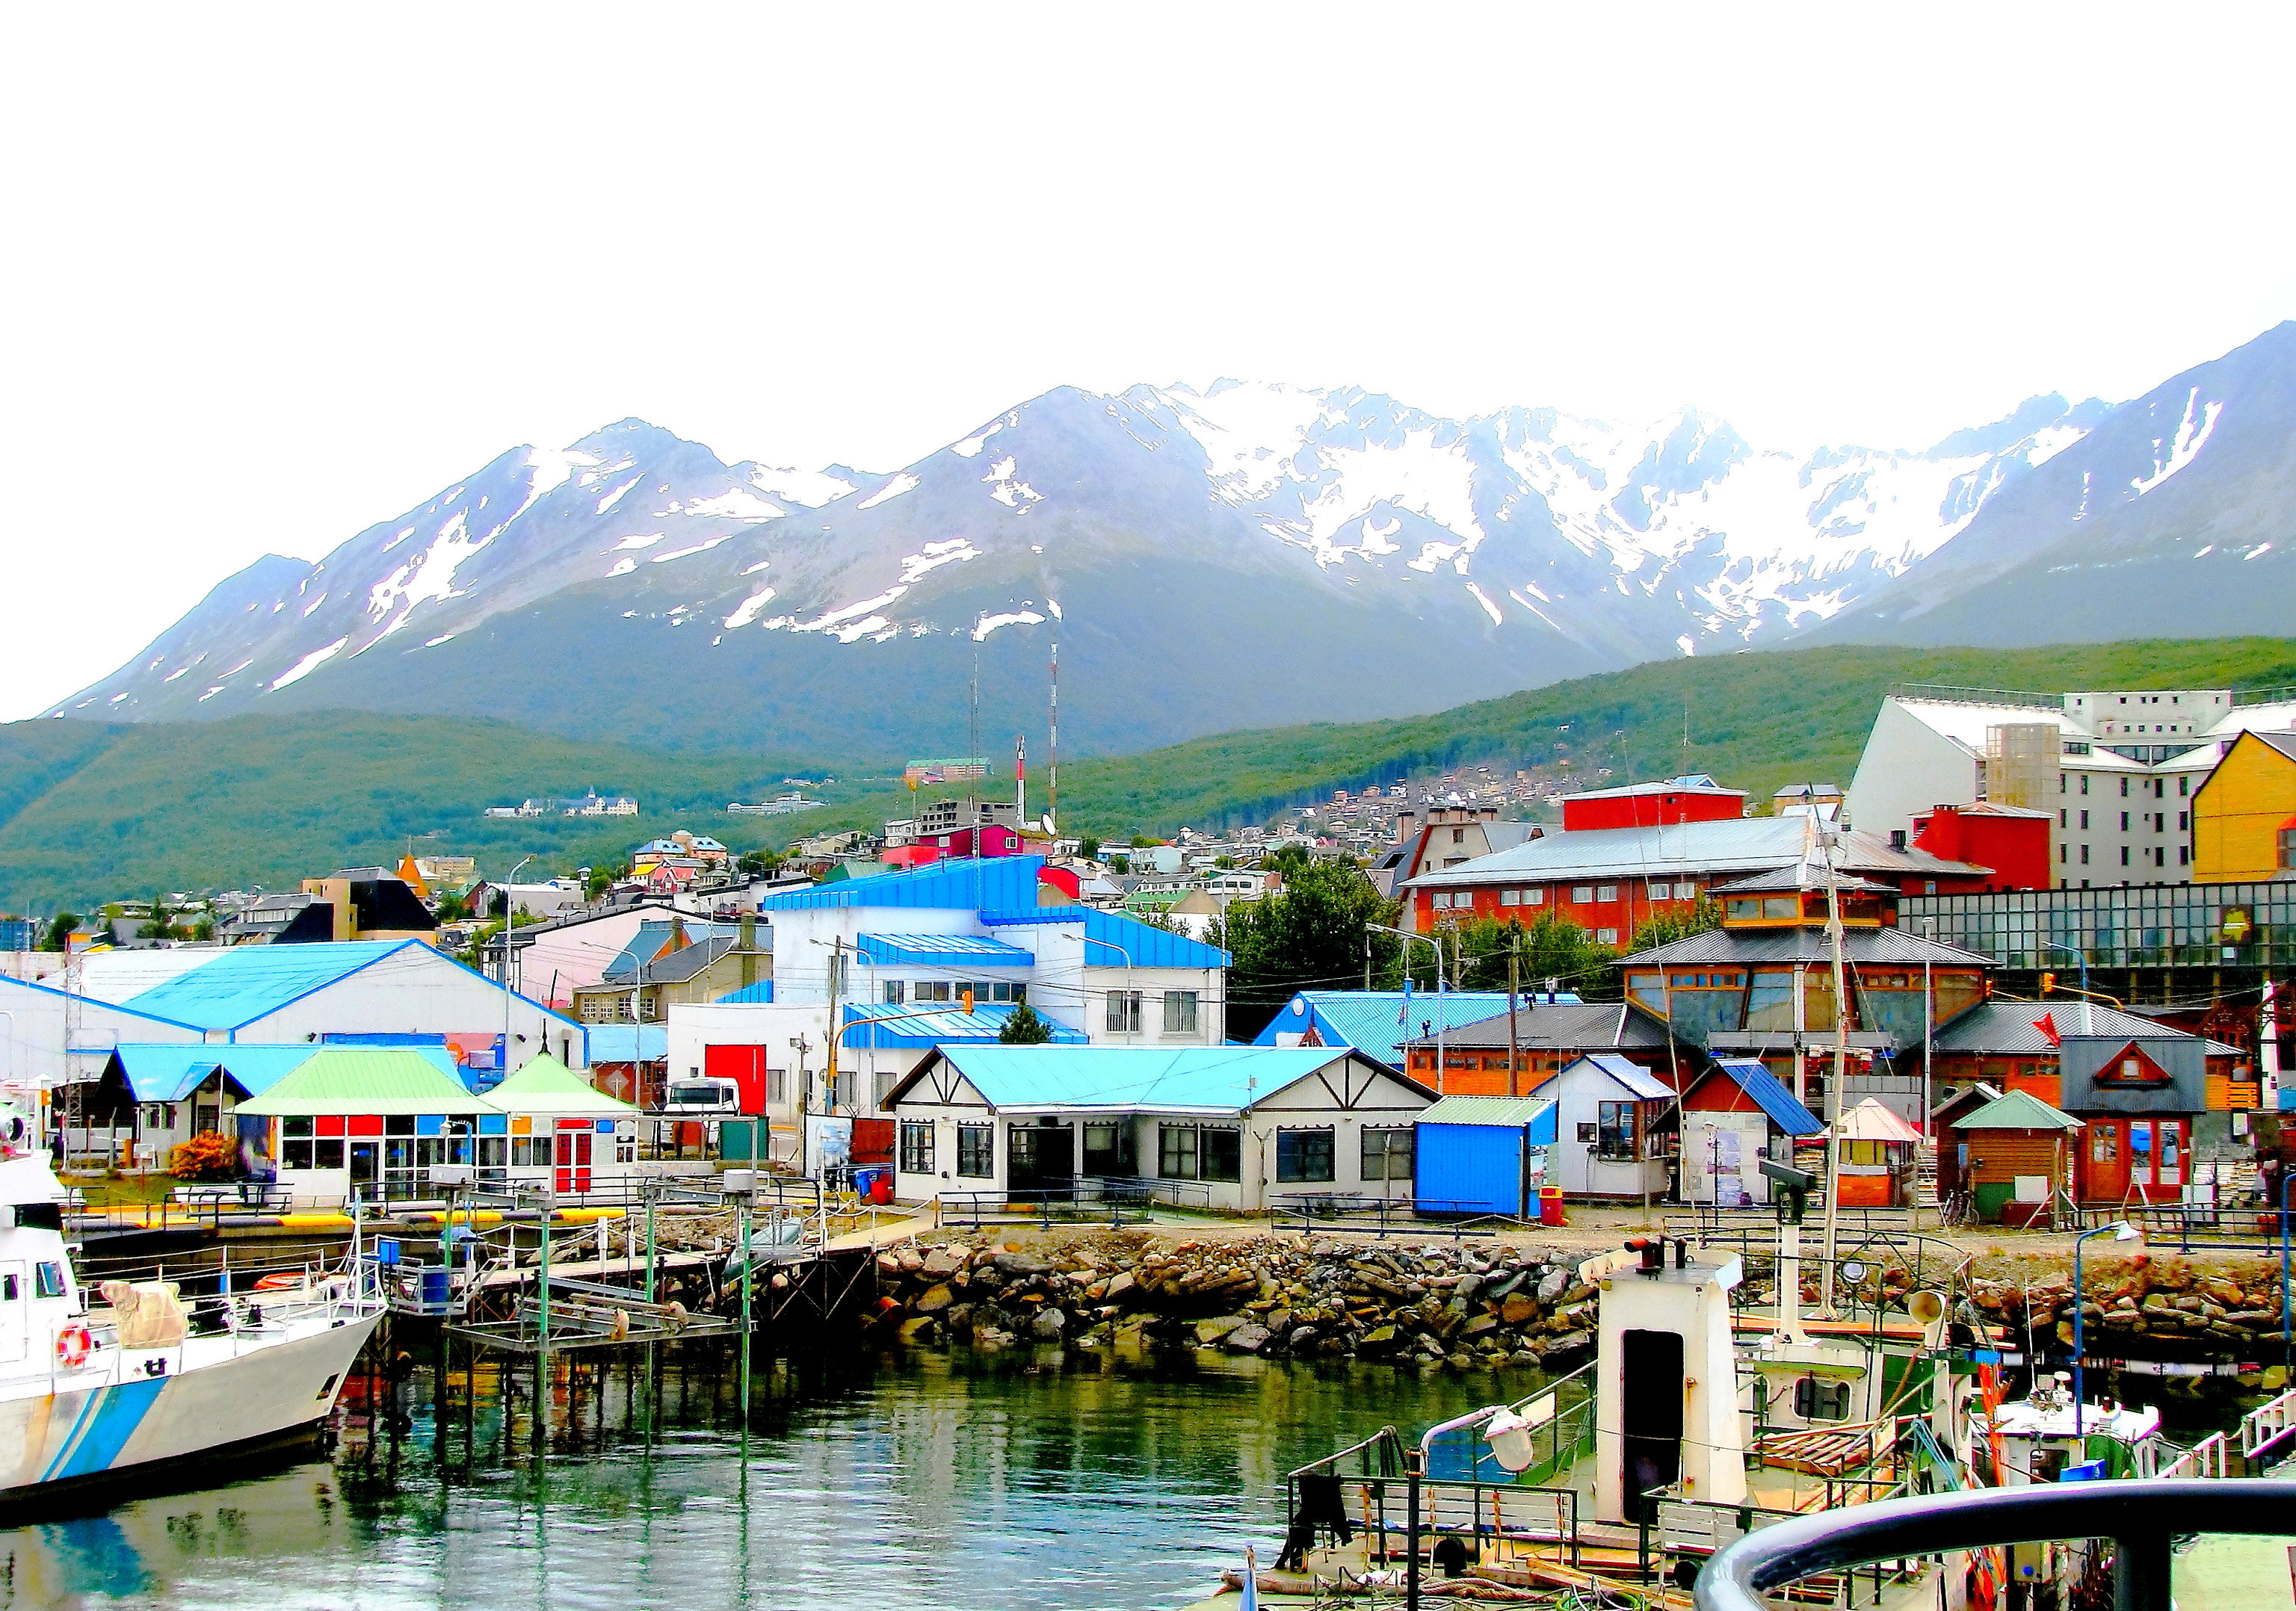 Outdoors + Adventure mountain sky scene water Boat outdoor Harbor Town tourism mountain range leisure hill station docked City fjord Lake mount scenery dock Village glacial landform resort town landscape distance